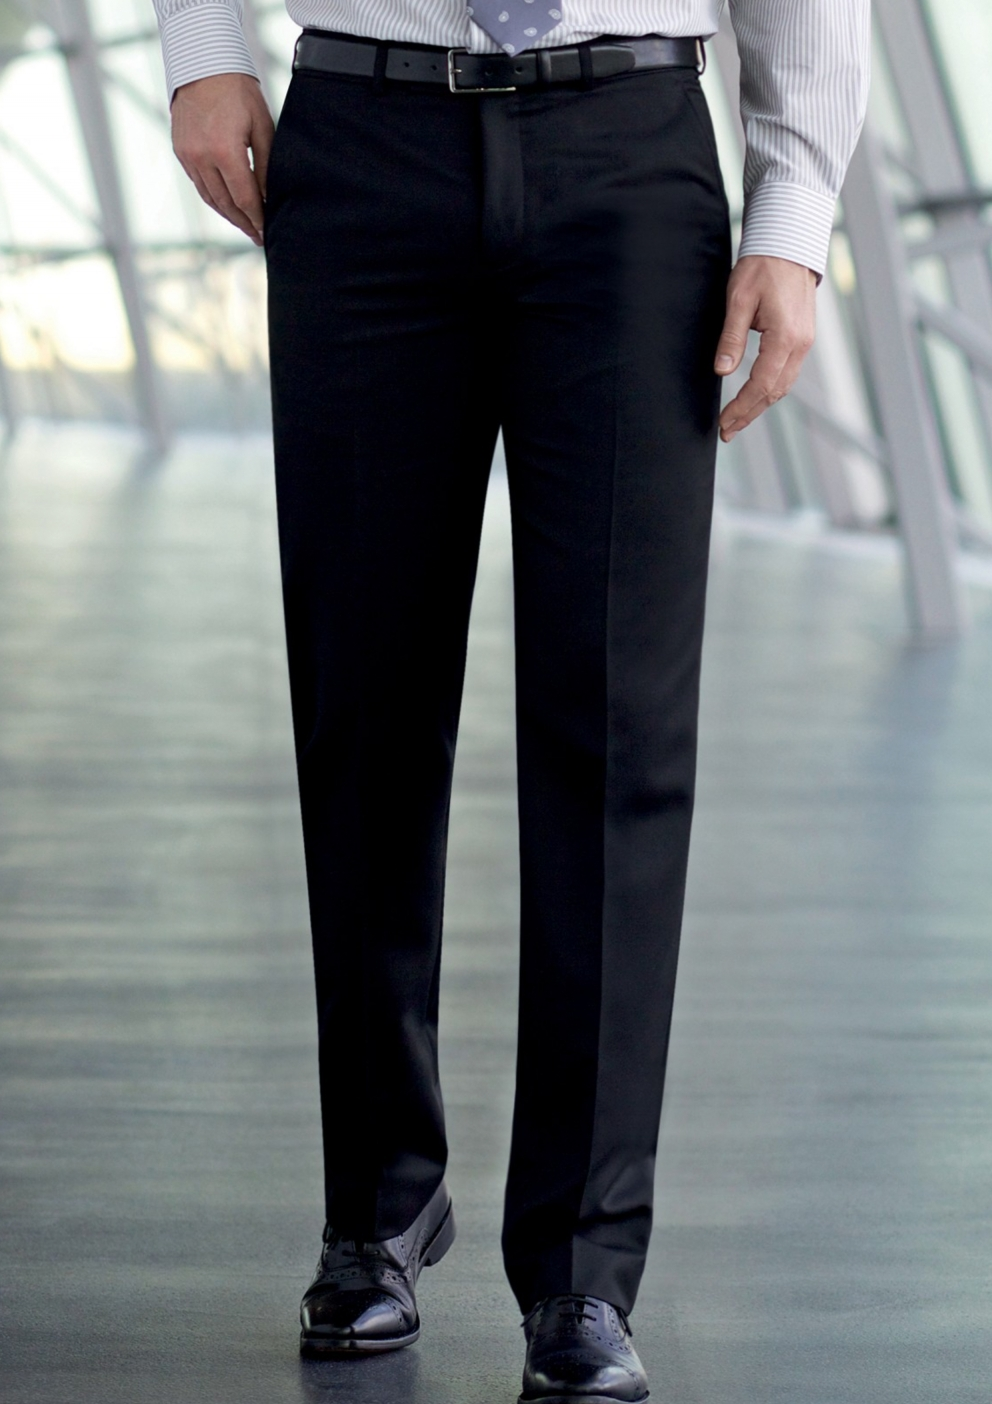 New Brook Taverner Apollo Mens Flat Front Work suit trousers NAVY-choose size